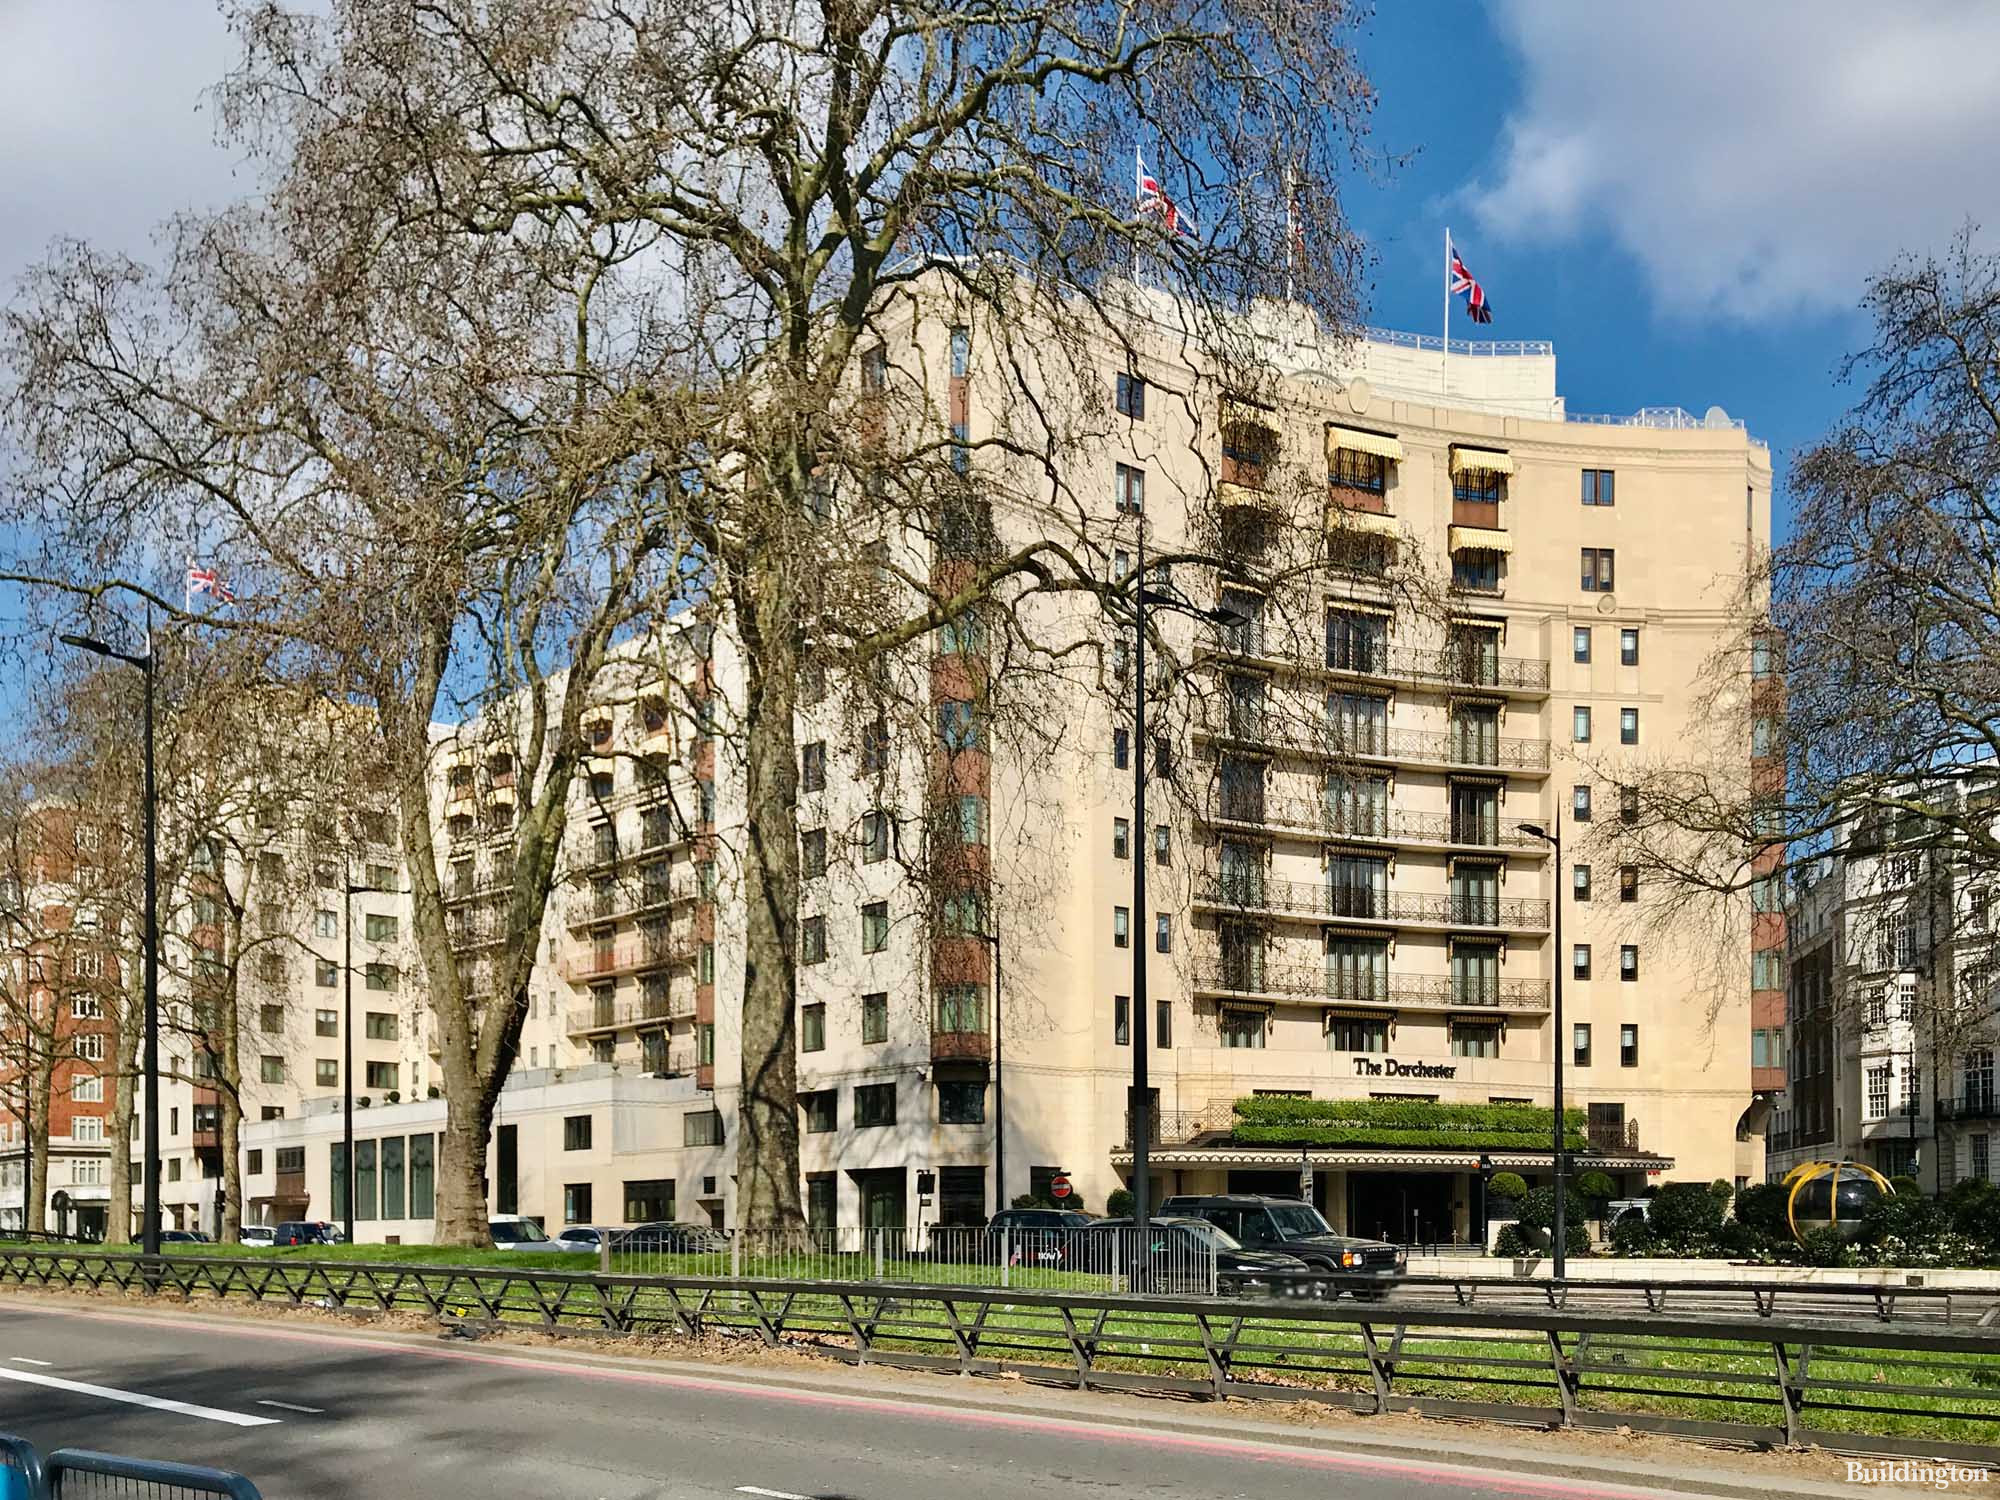 The Dorchester Hotel on Park Lane in Mayfair, London W1.